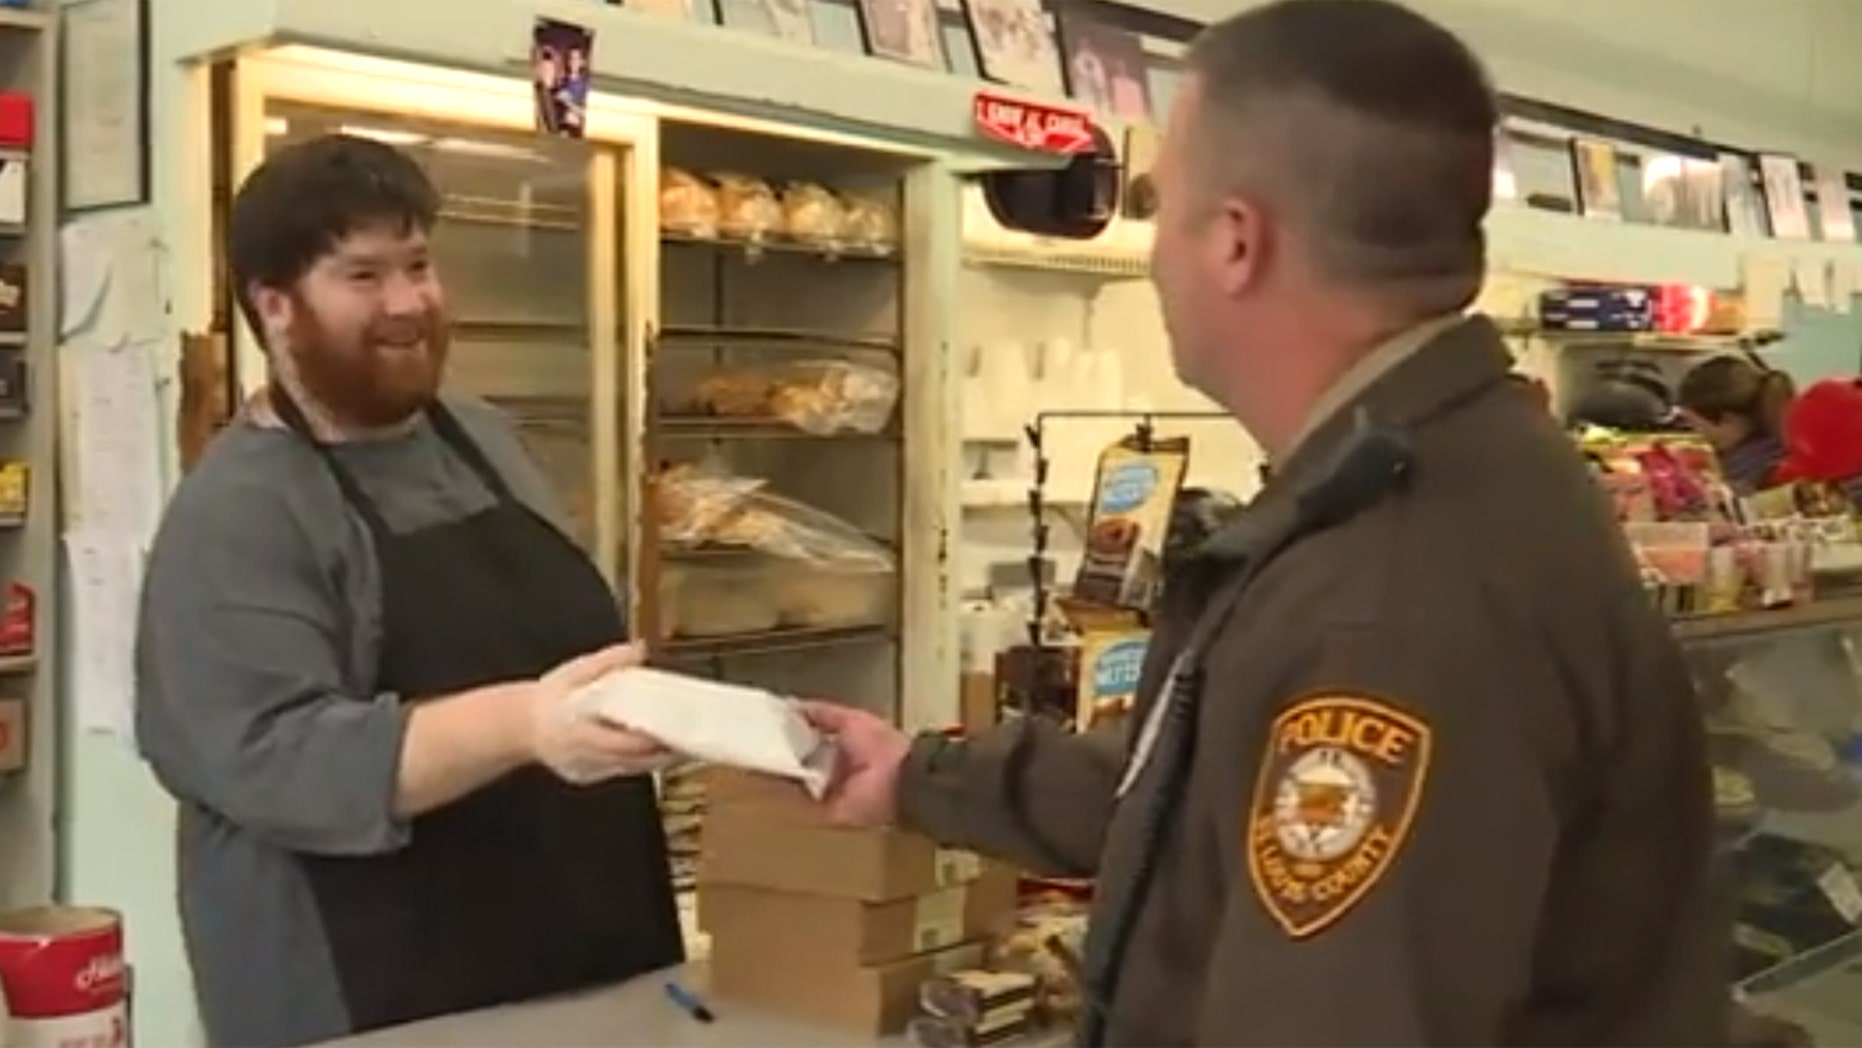 """A """"mystery man"""" is paying for local police officers at a deli in suburban St. Louis."""